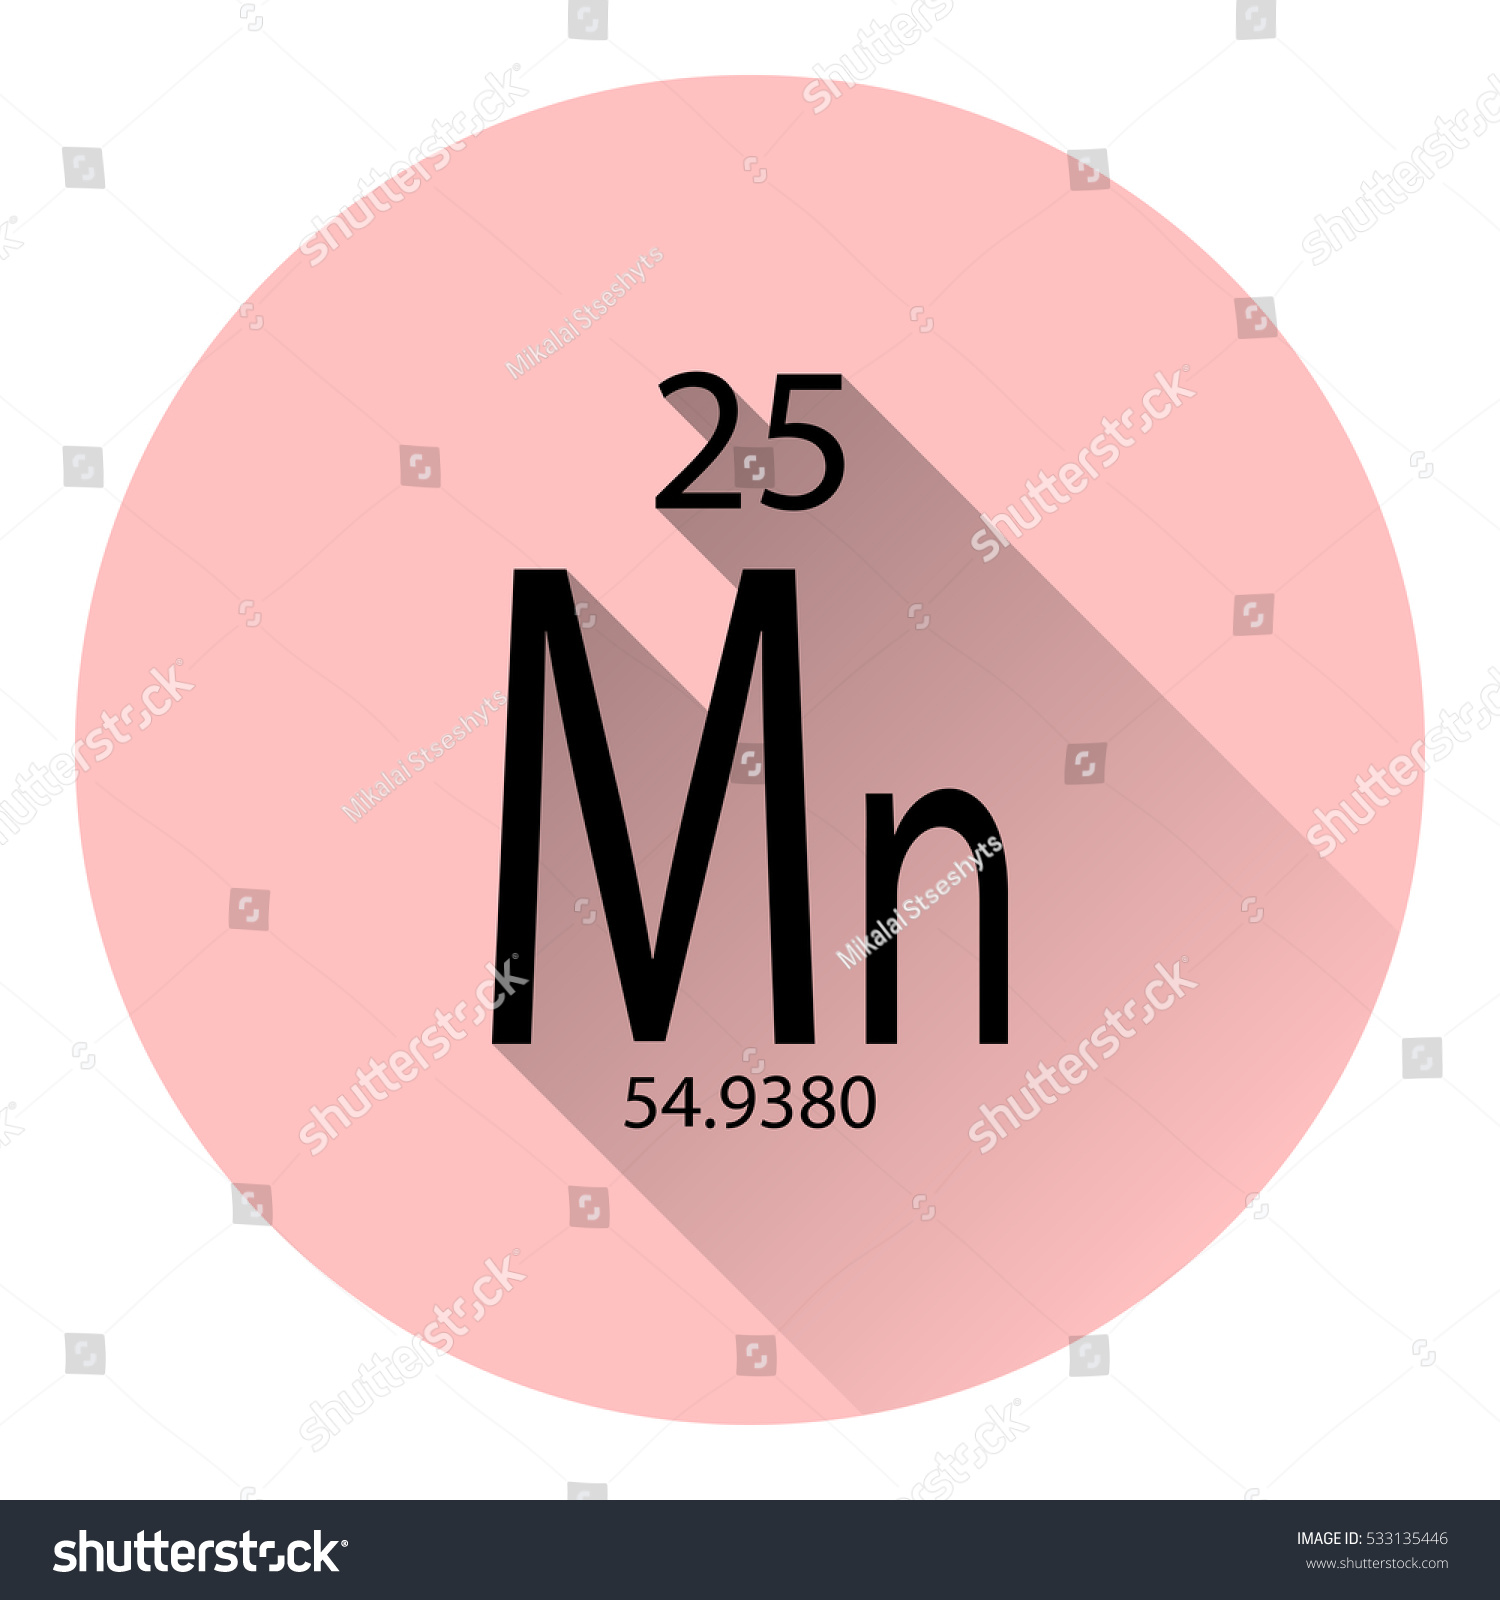 Manganese on periodic table images periodic table images manganese periodic table gallery periodic table images periodic table element manganese basic properties stock vector the gamestrikefo Images